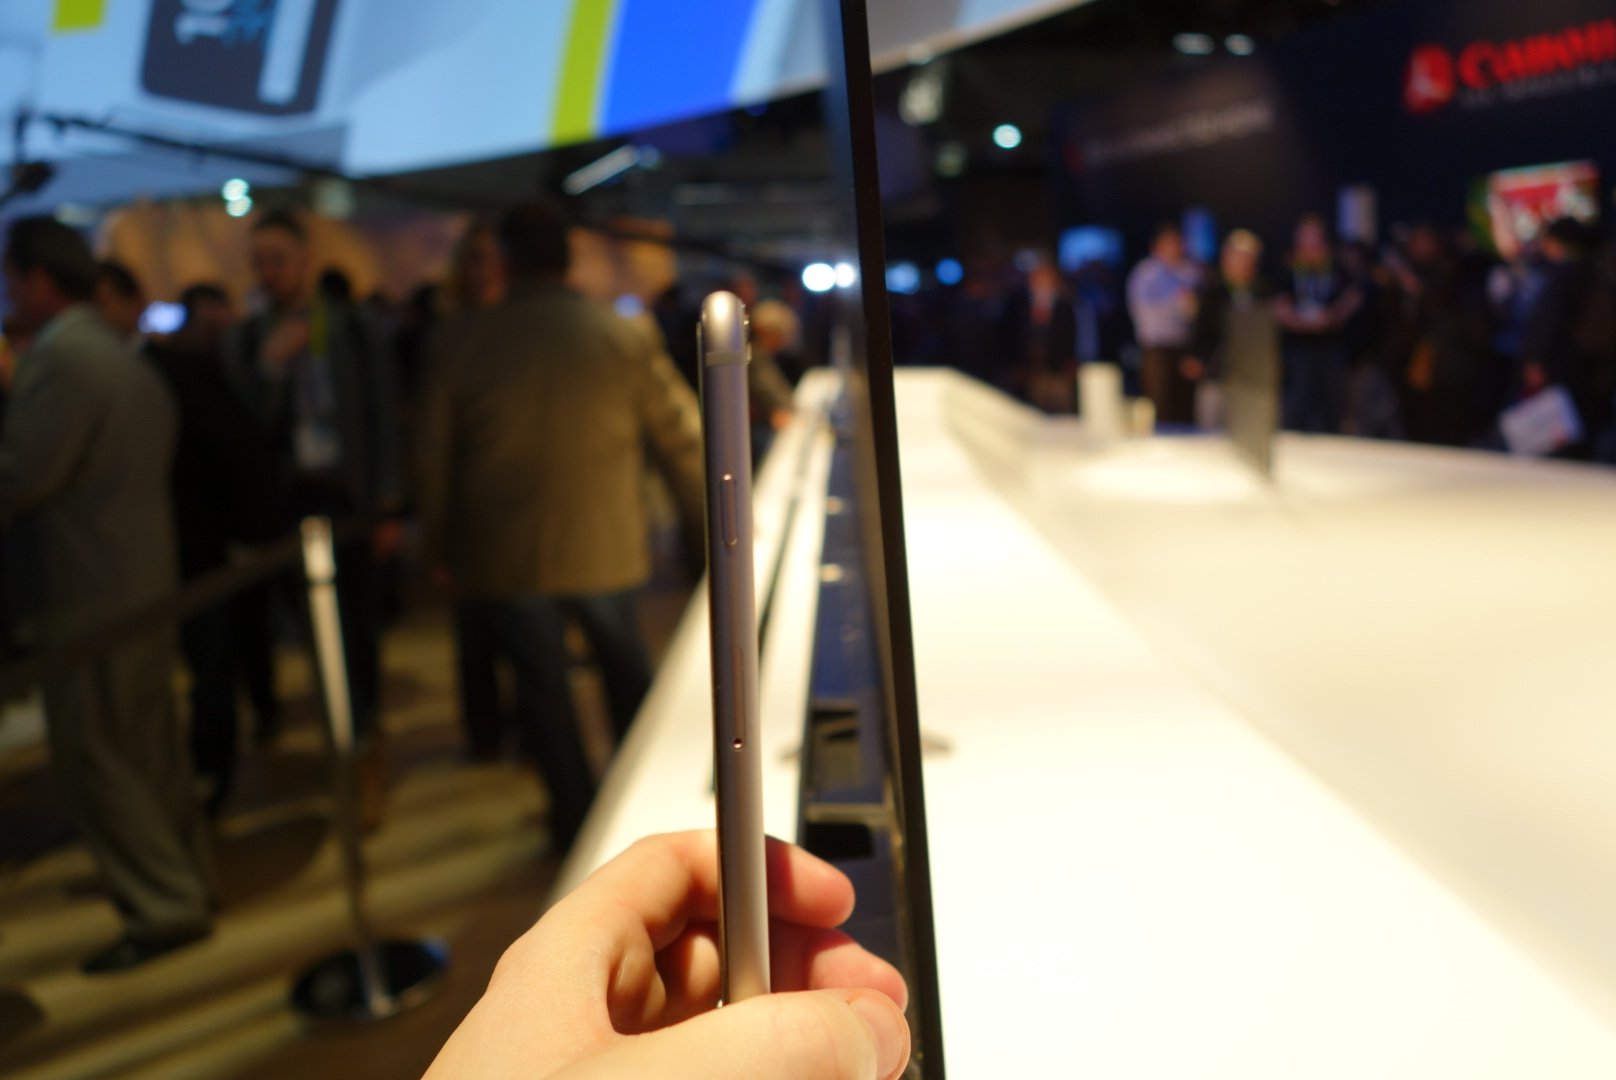 Just How Thin Is Sony's New Crazy-Skinny TV?